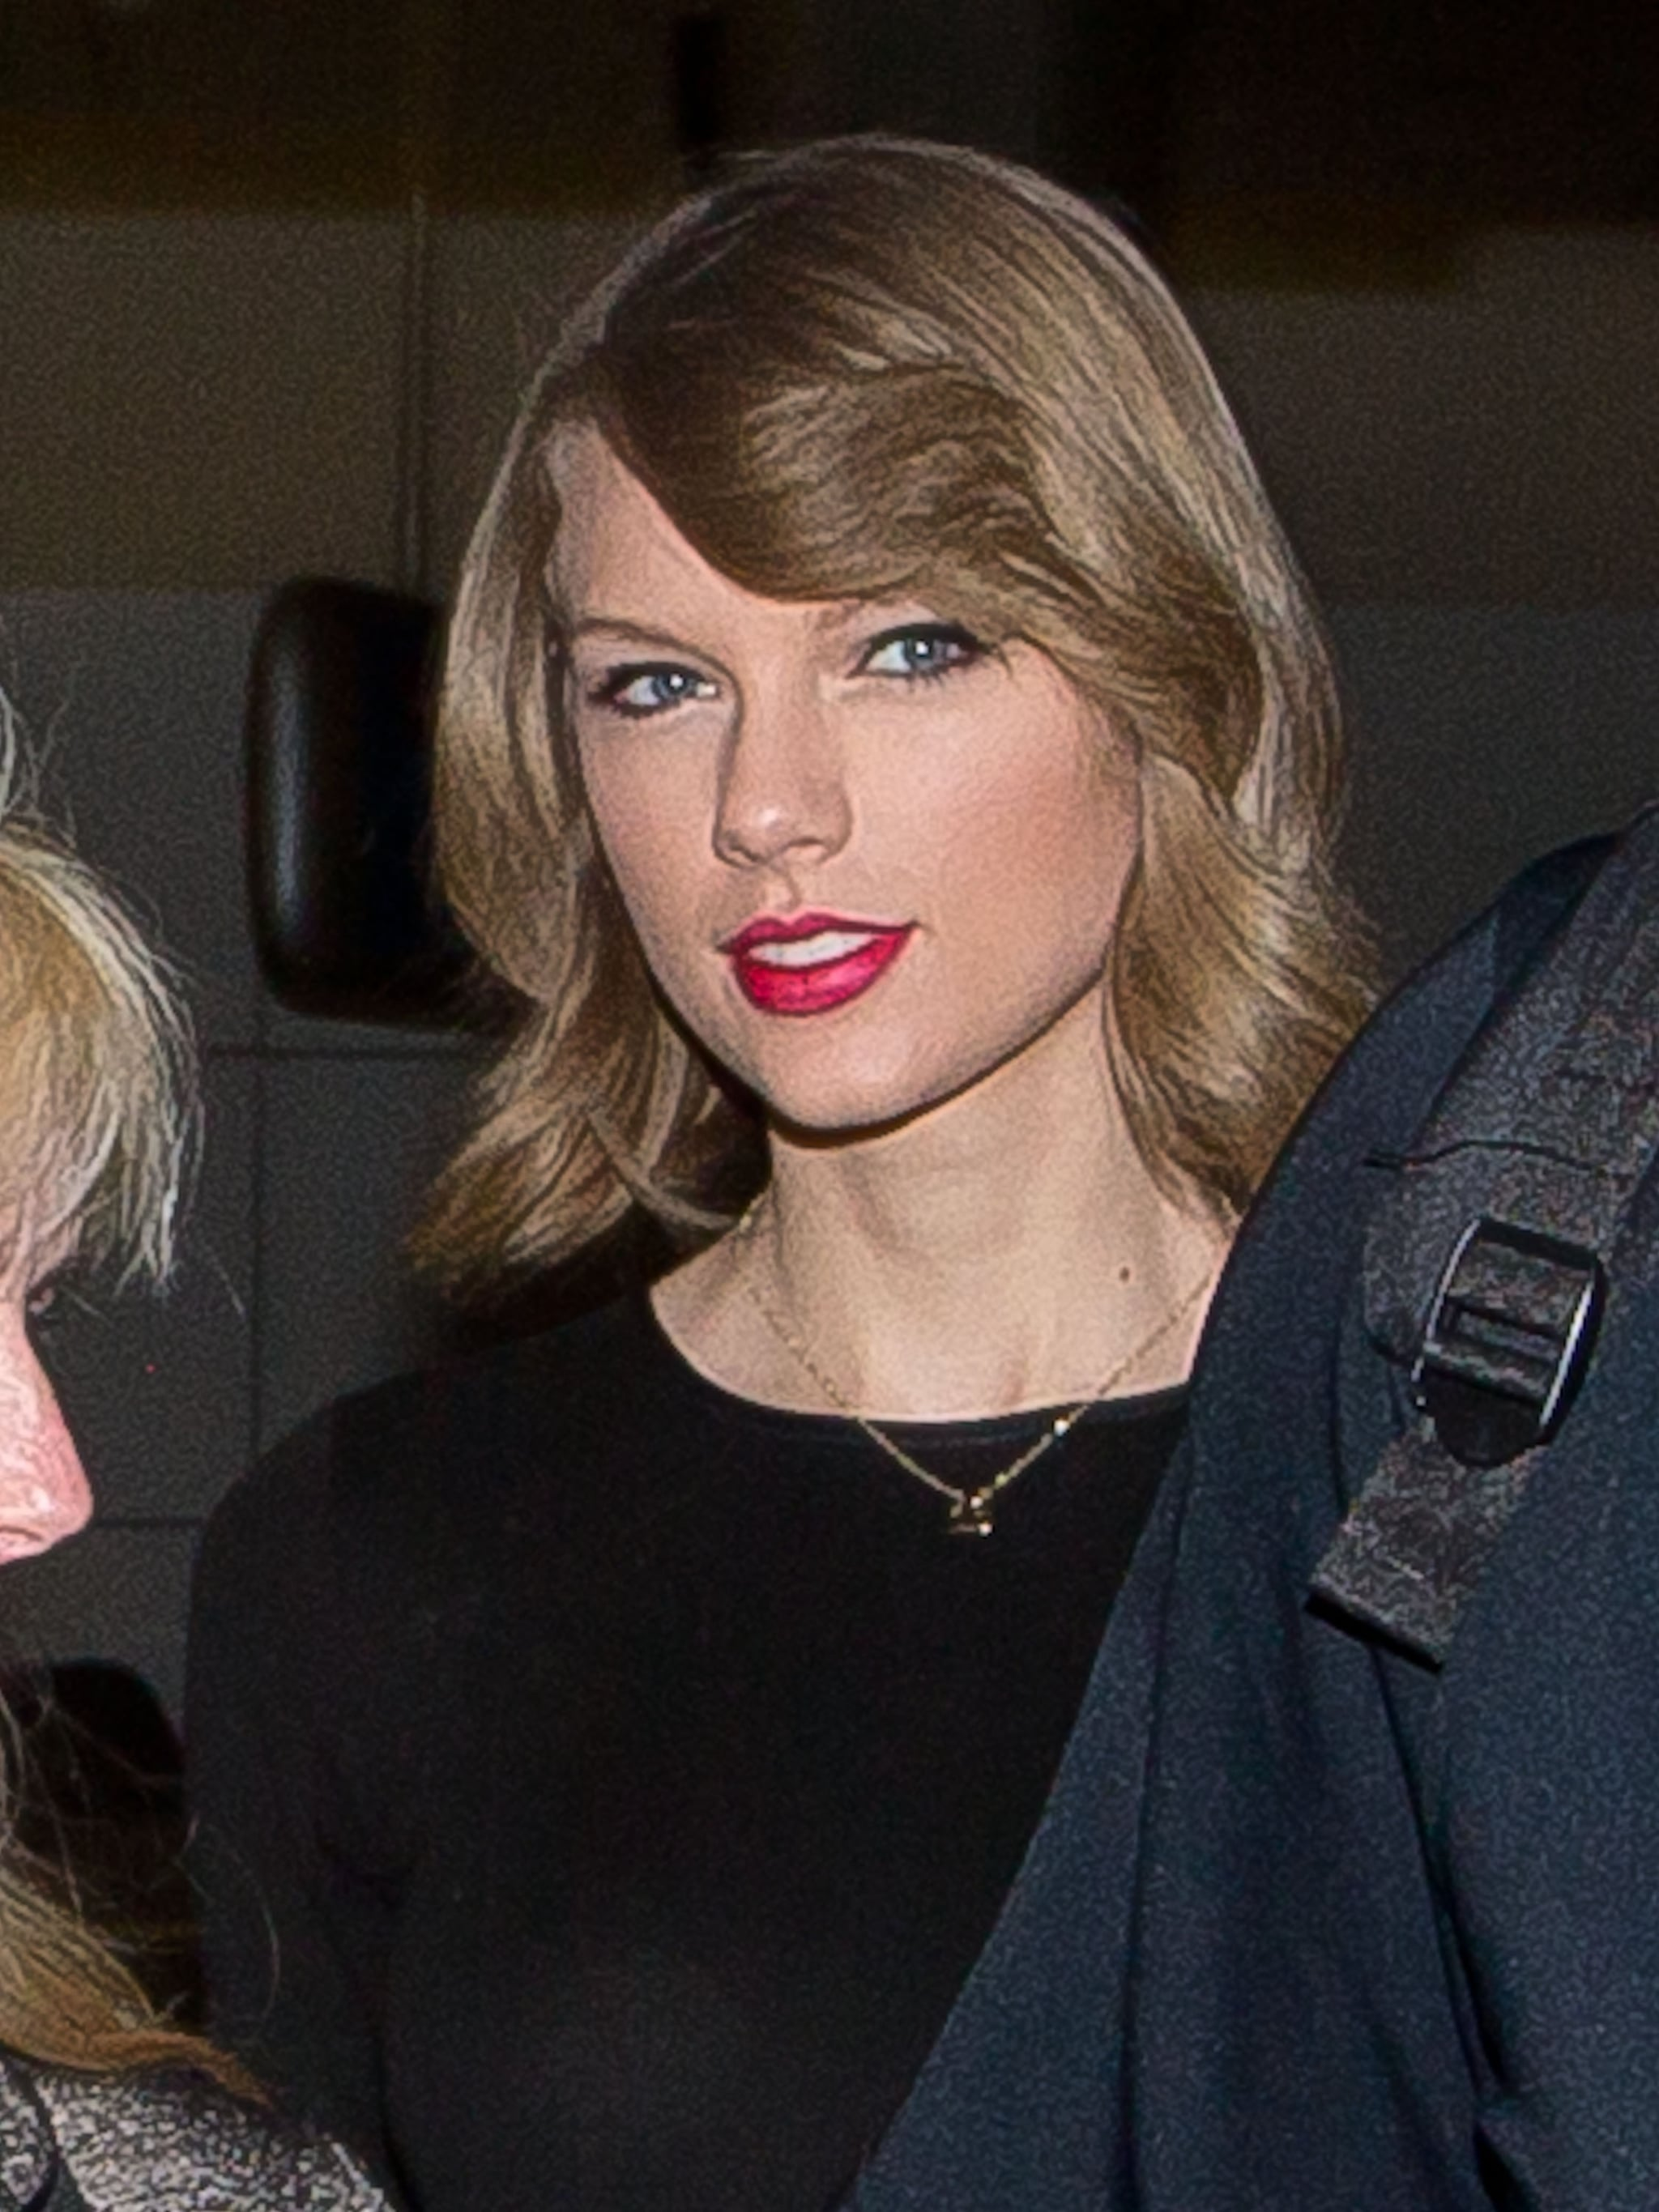 Pictures Of Taylor Swift S New Lob Haircut Popsugar Beauty Australia